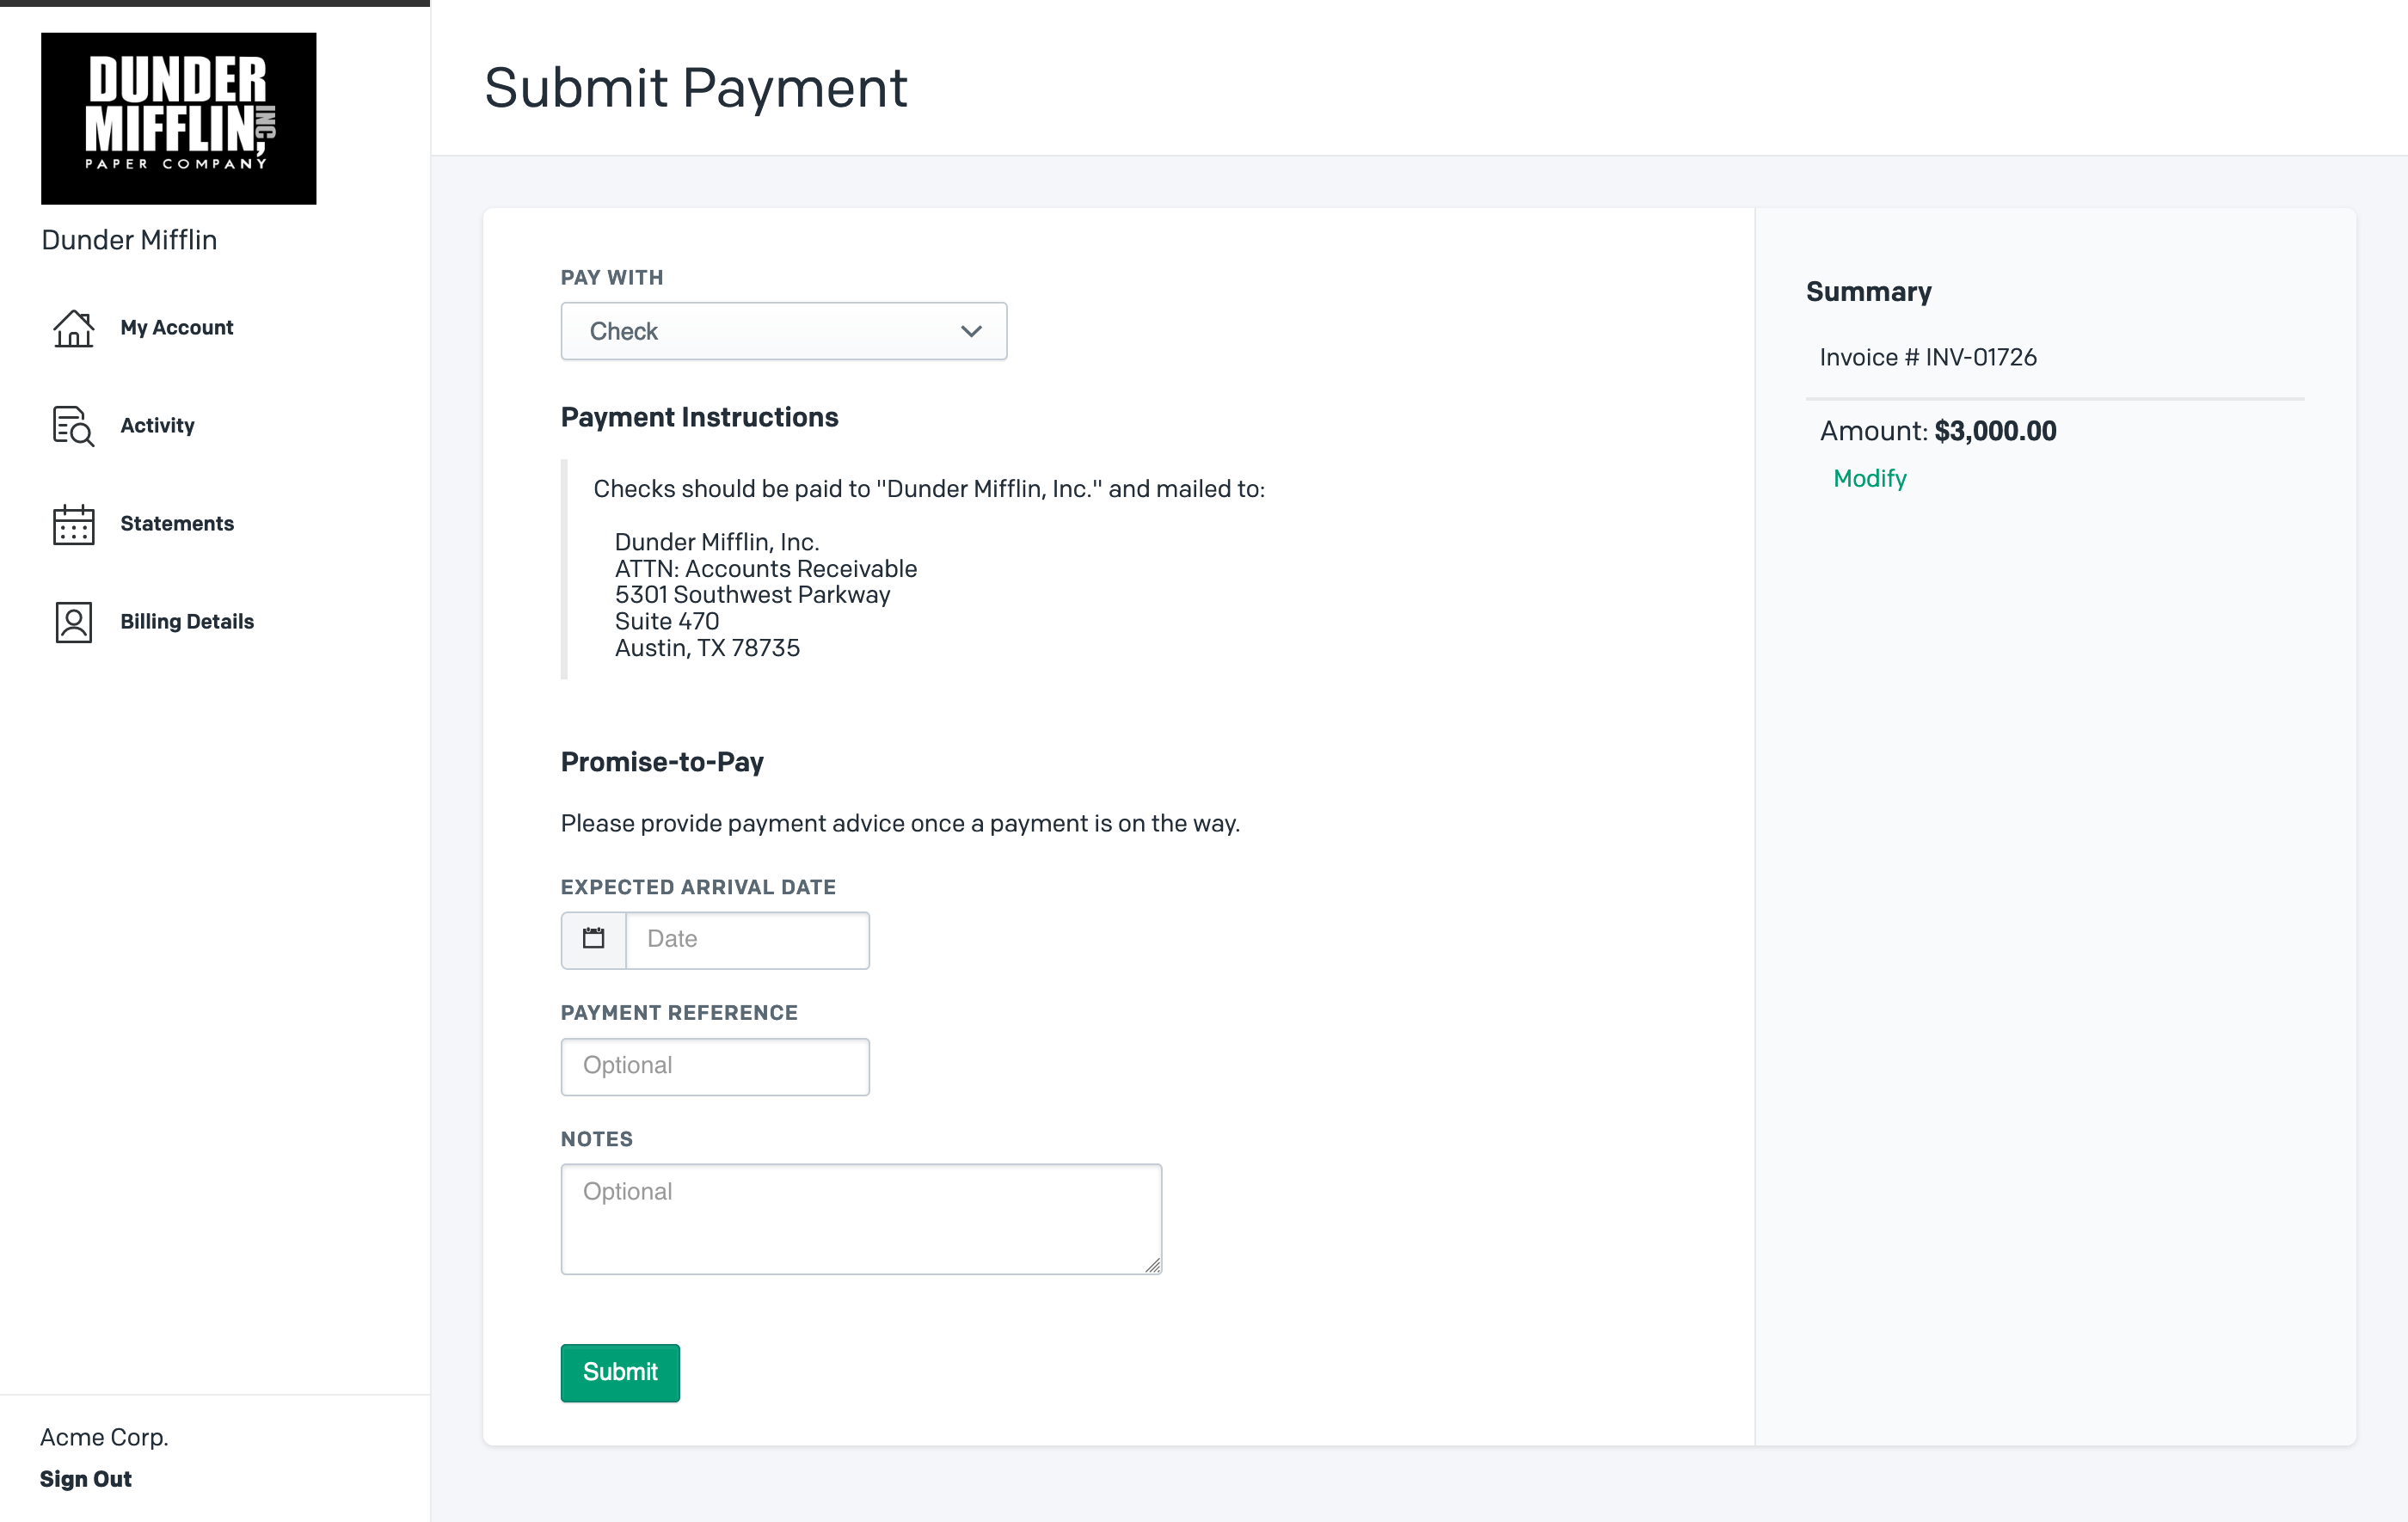 Pay invoice with check